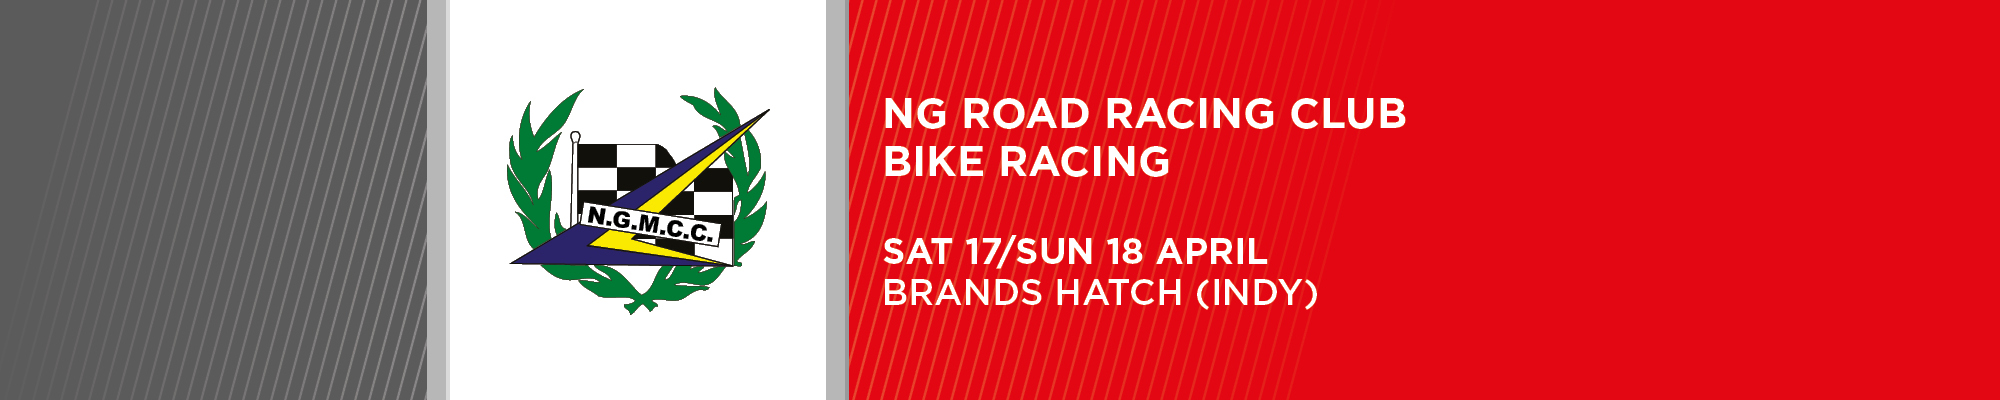 NG Road Racing Club Bike Racing